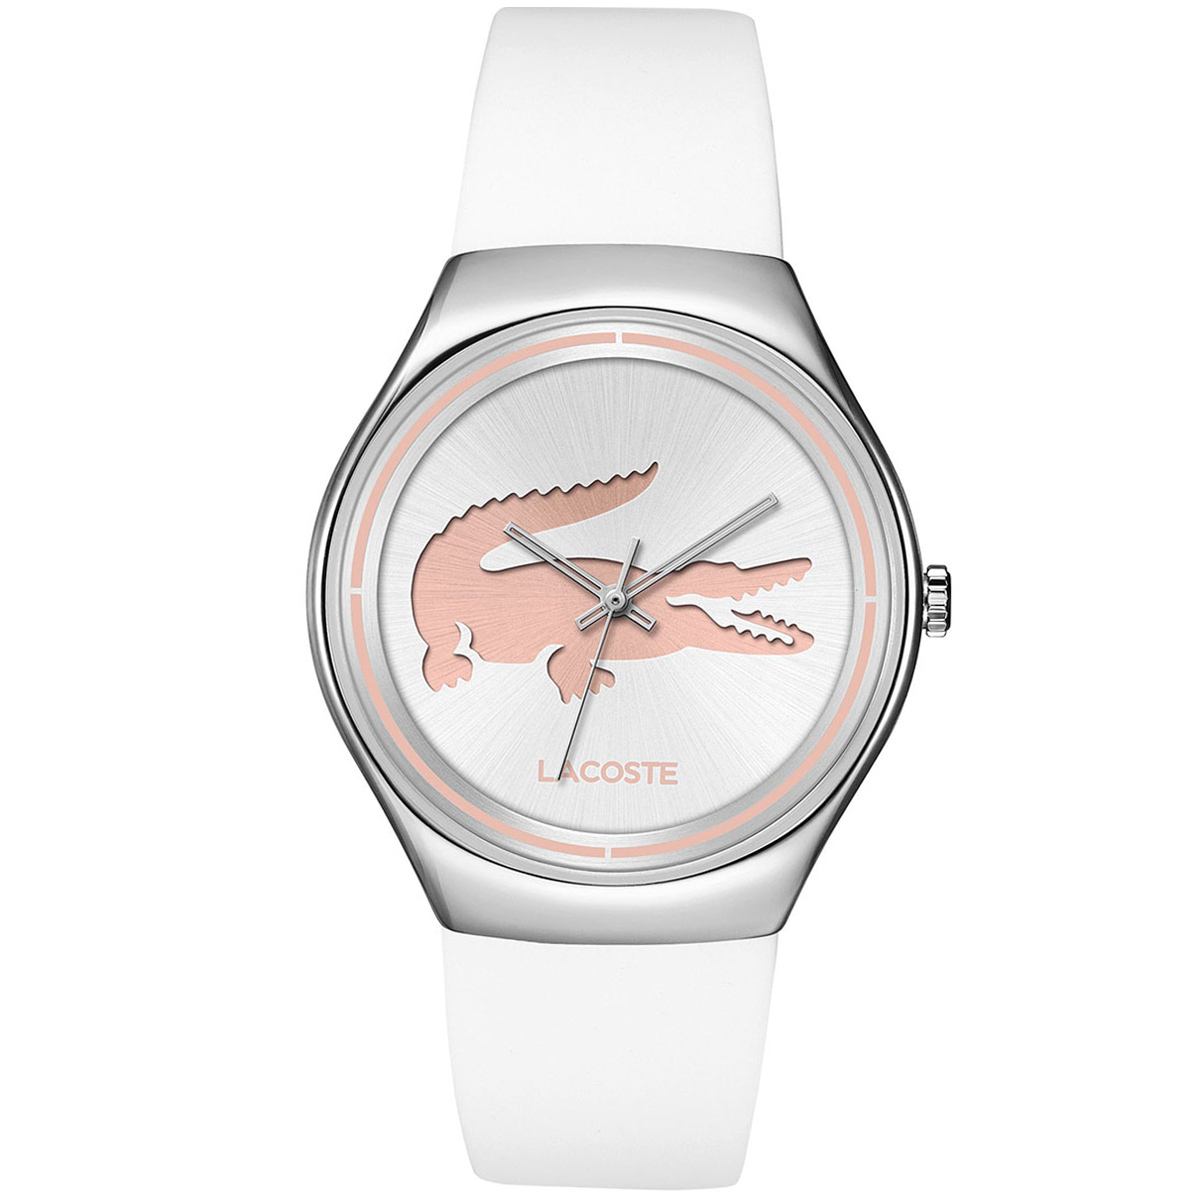 Lacoste-Charlotte-Ladies-Analog-Watch-Casual-Rose-Gold-Band-2000834-2000831